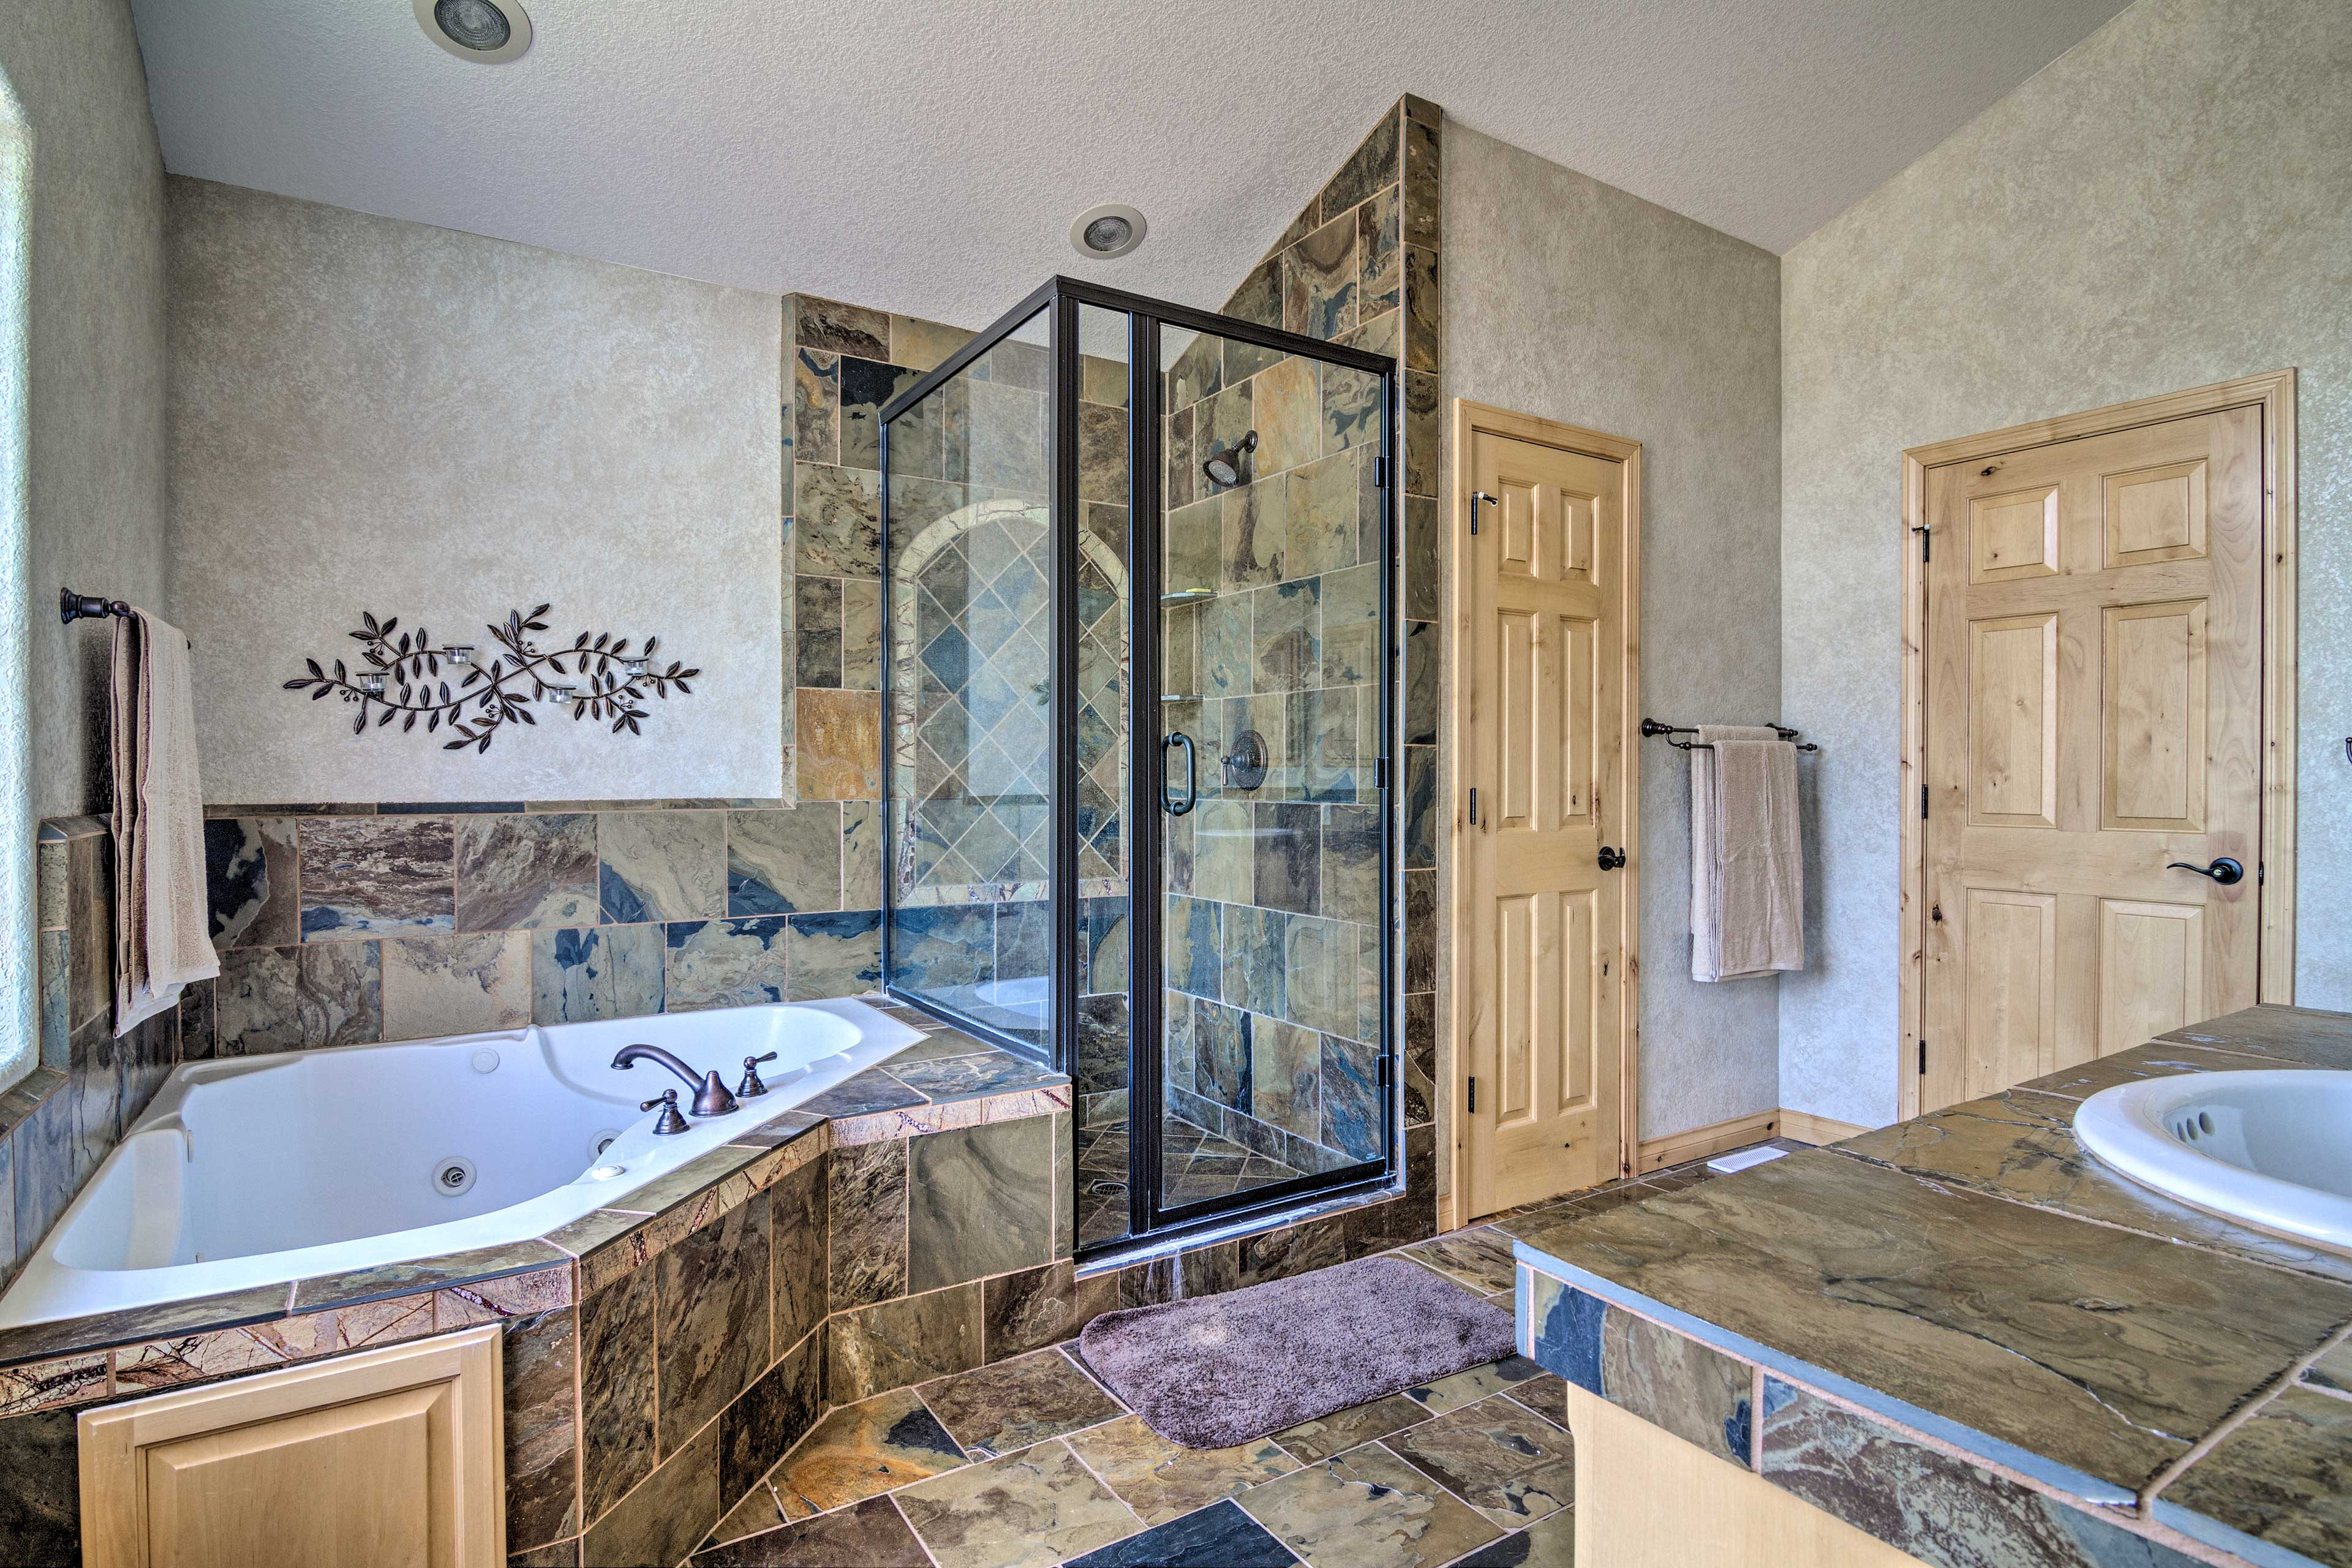 After a day outdoors, shower off in the lavish master bathroom.